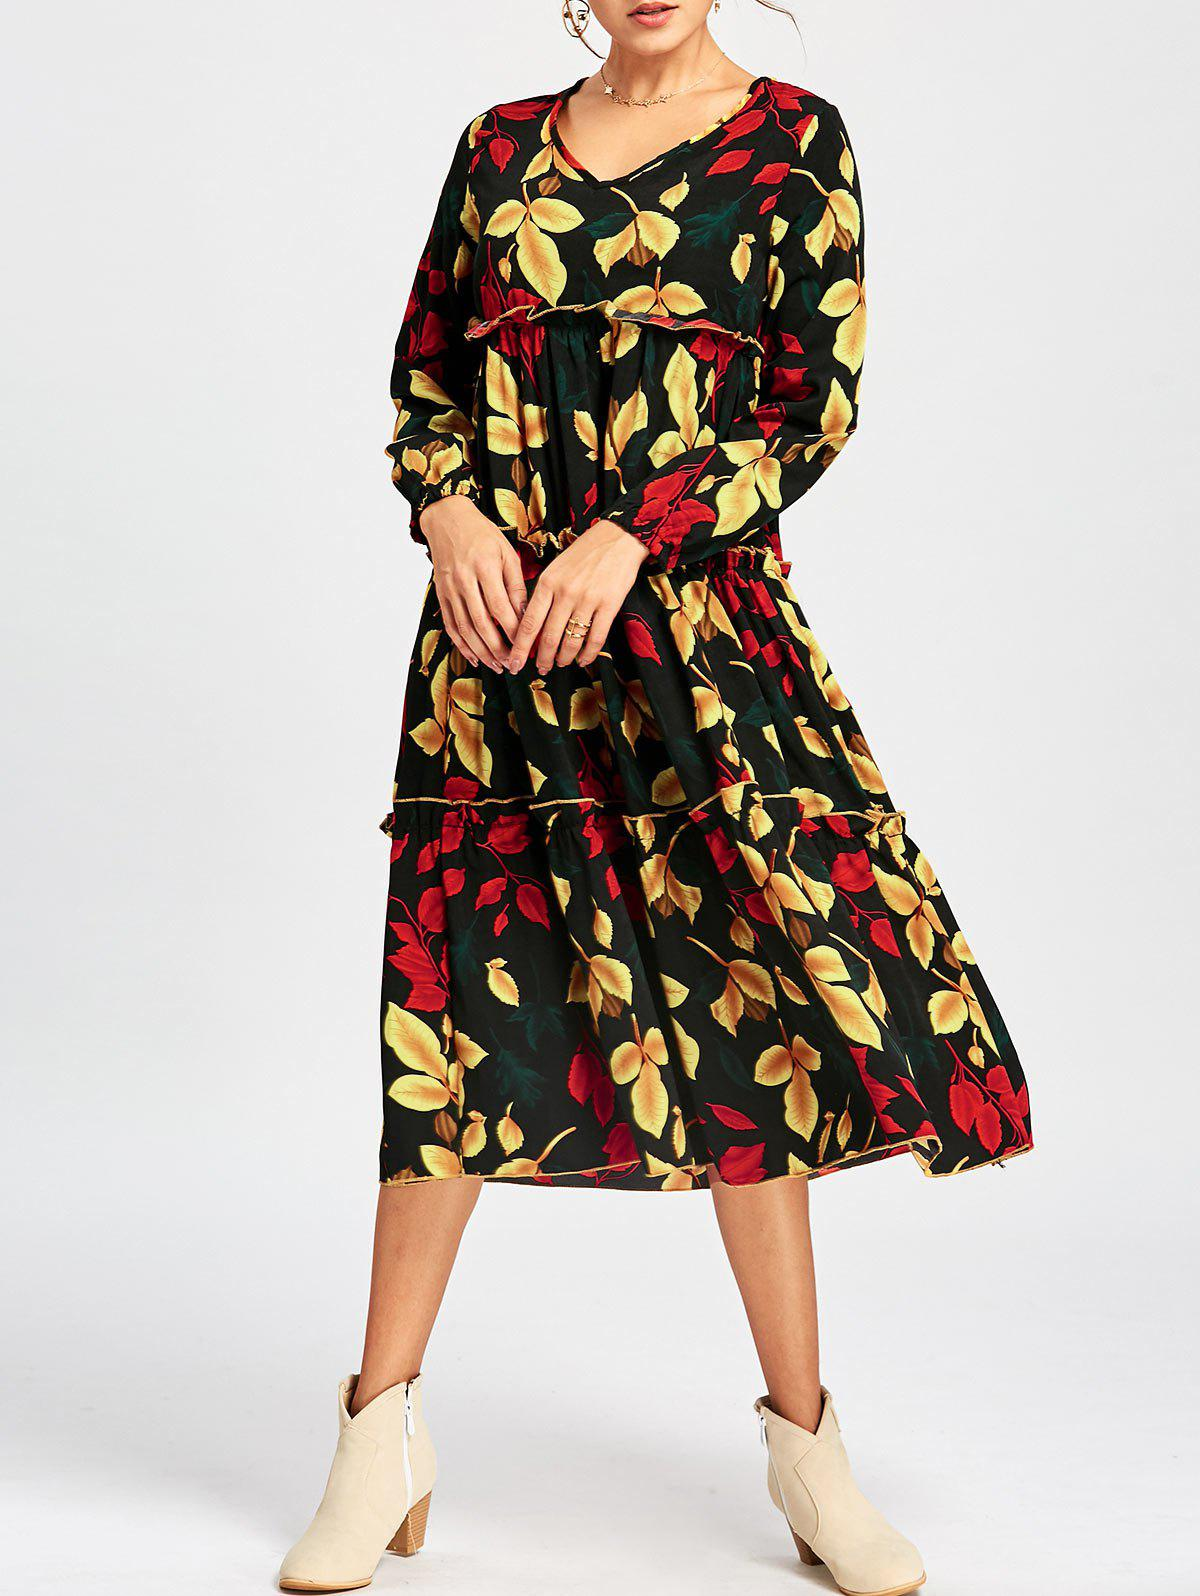 V Neck Leaf Print Midi Dress - COLORMIX XL